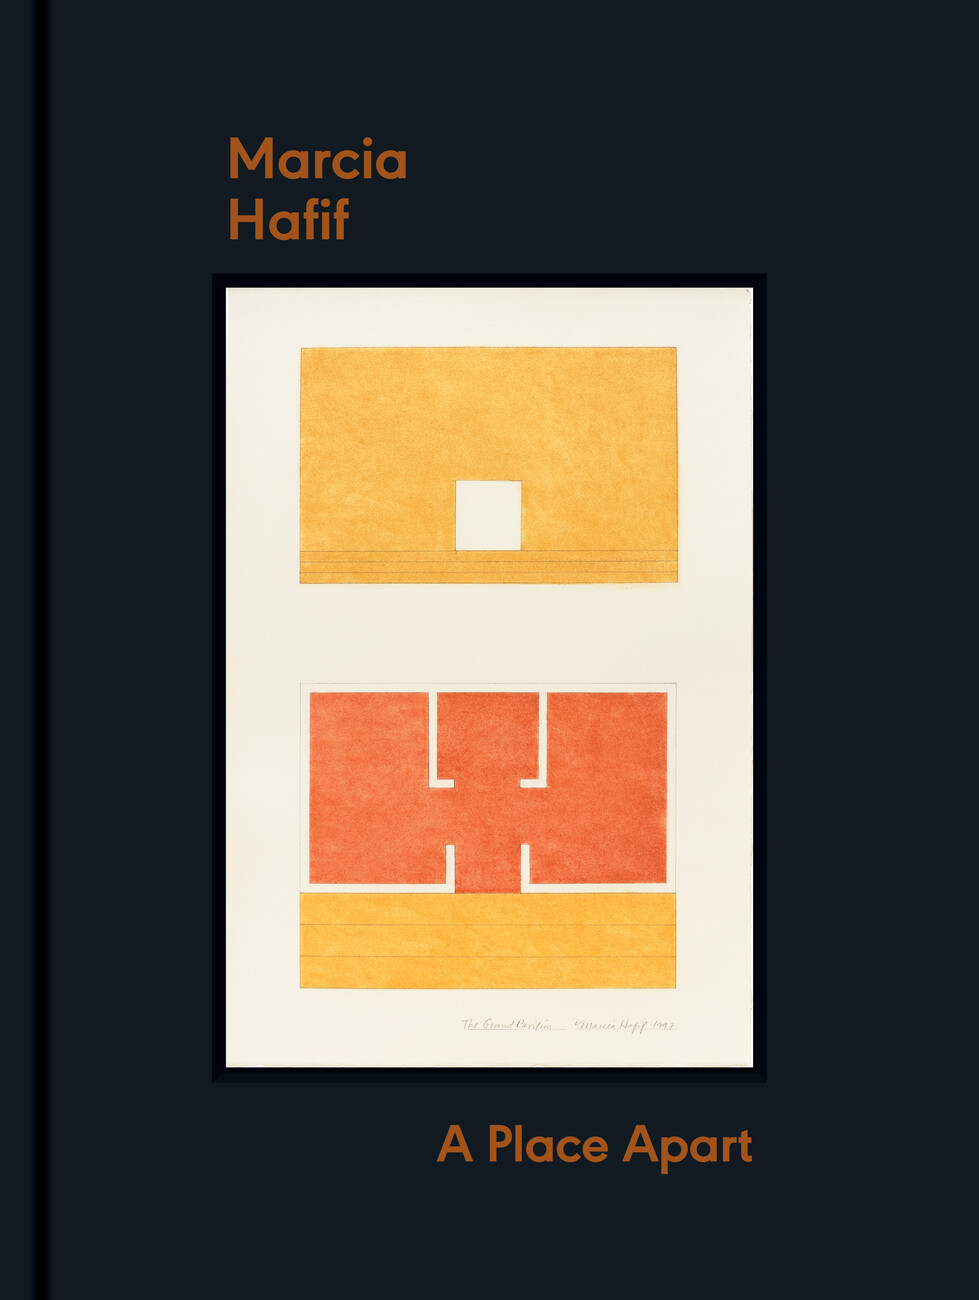 Catalogue cover for Marcia Hafif's exhibition A Place Part blue cover with artwork orange-yellow and orange colored design